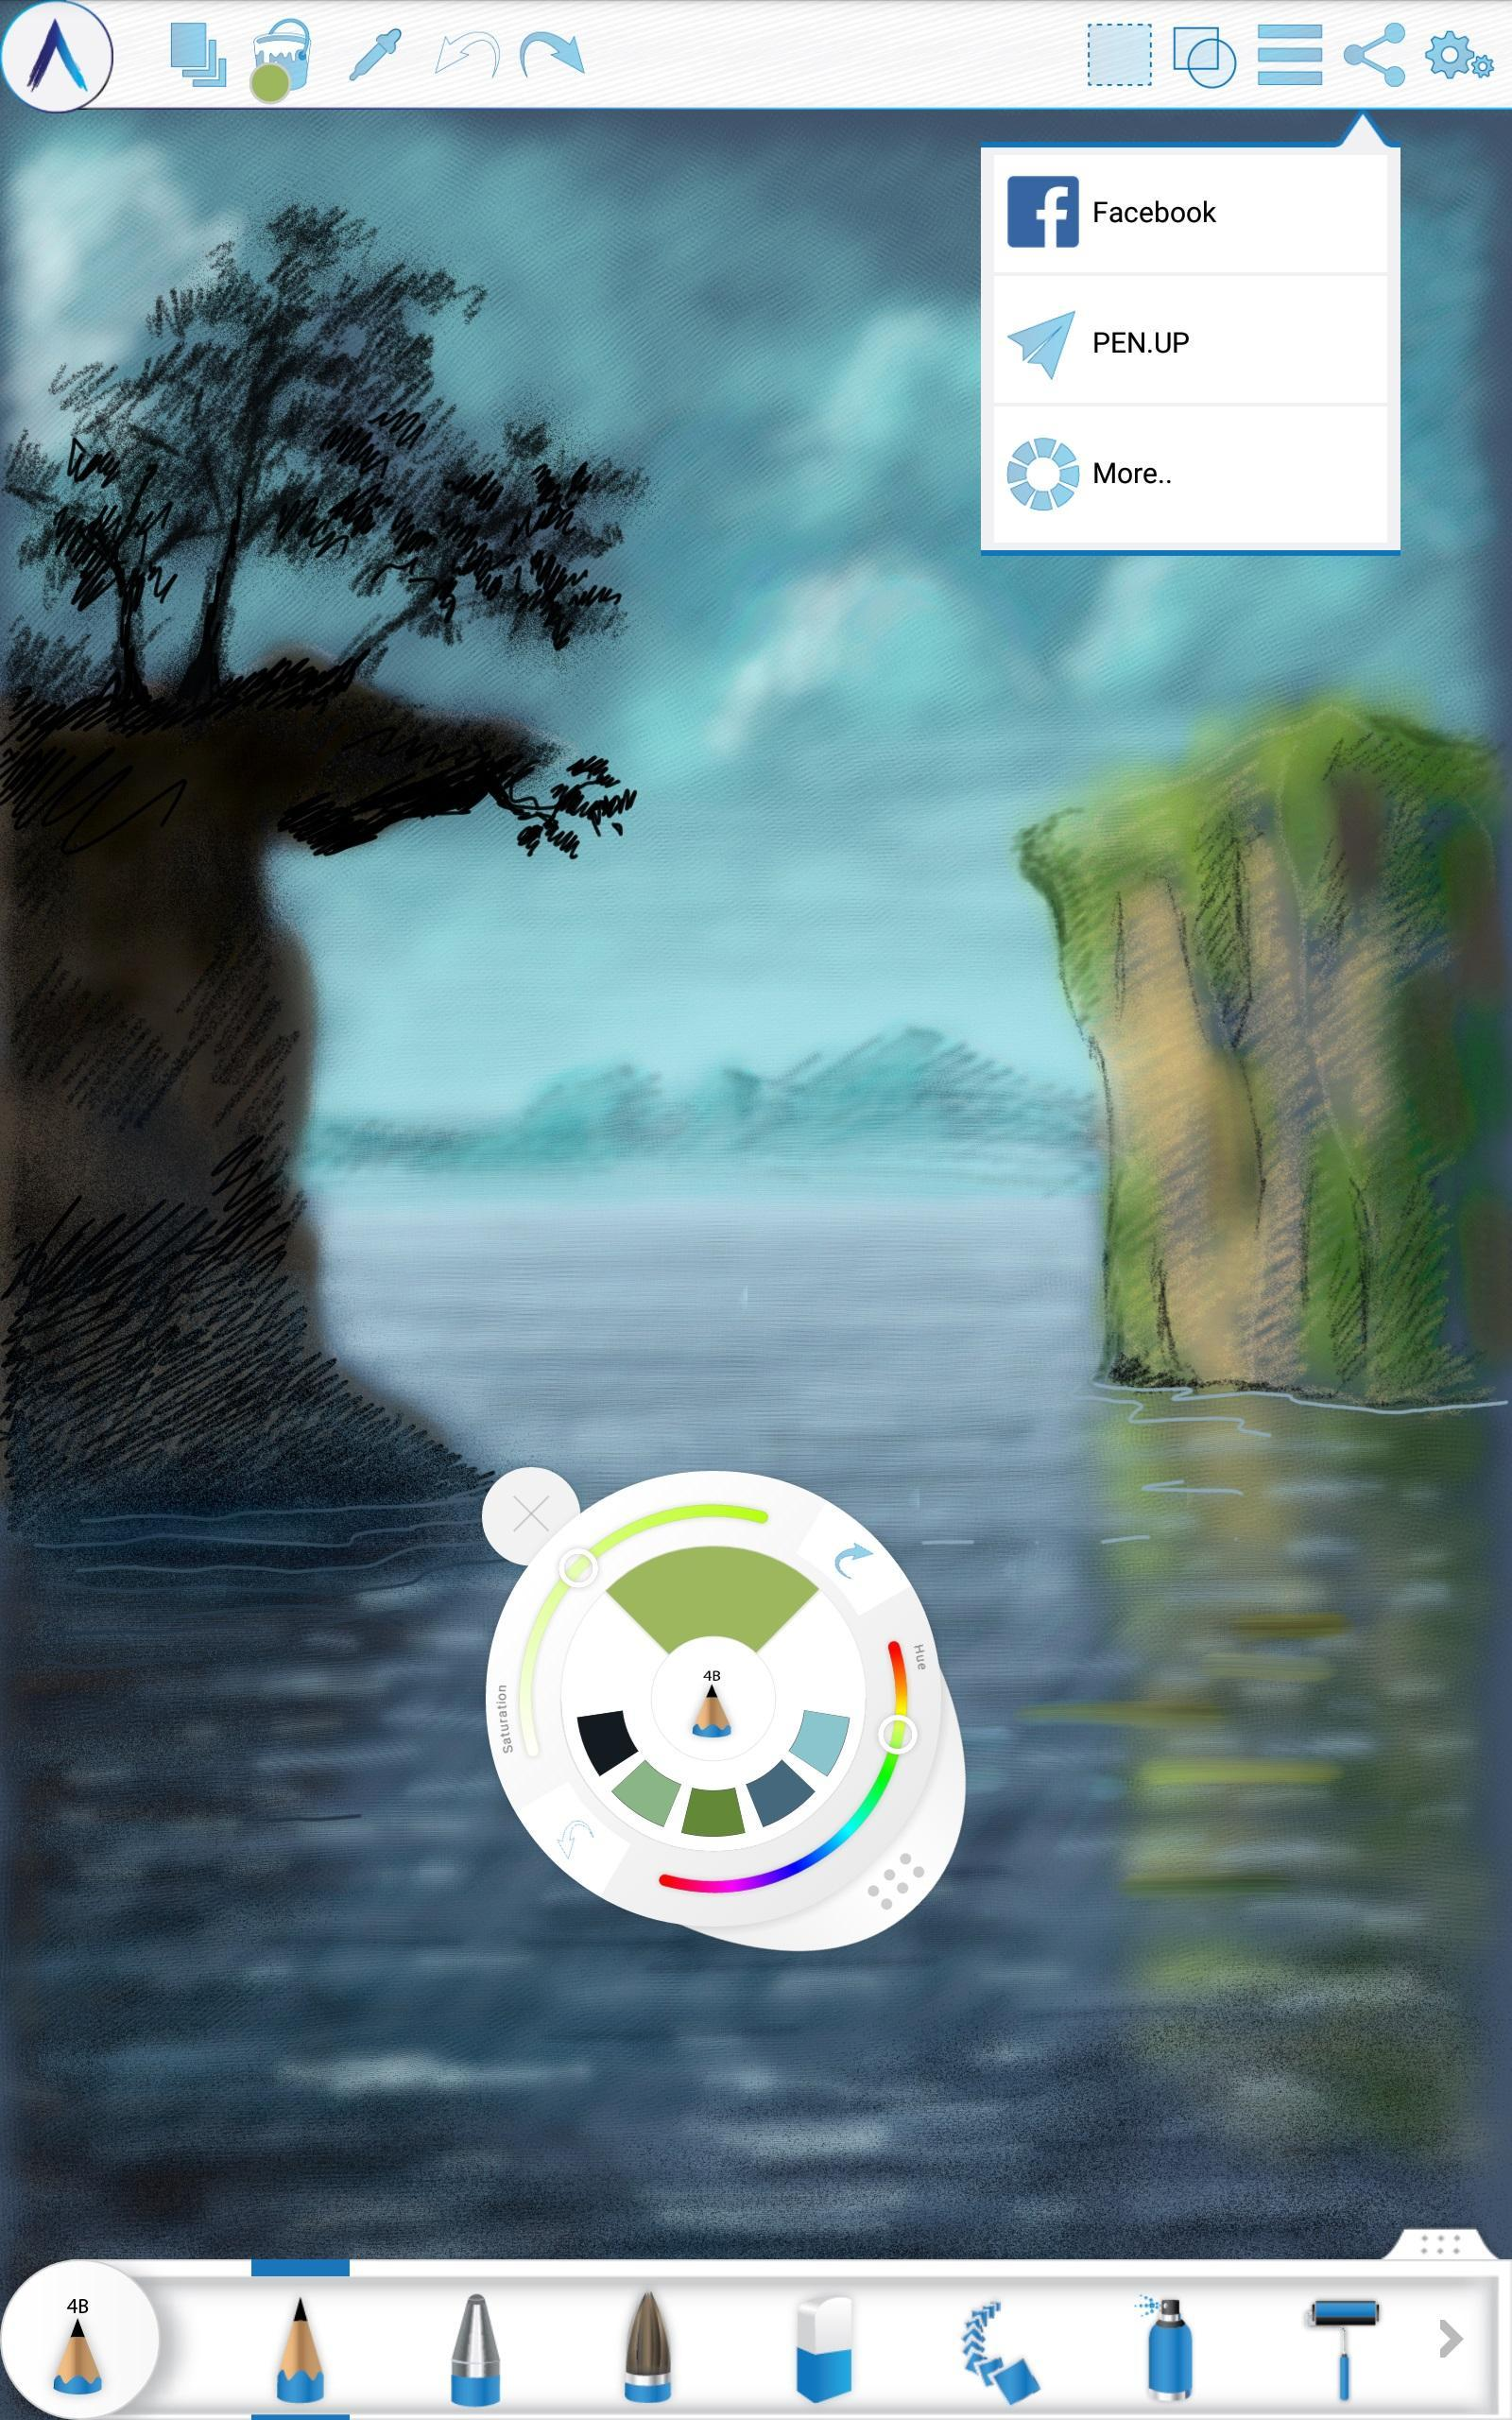 Artecture Draw, Sketch, Paint 5.2.0.4 Screenshot 13